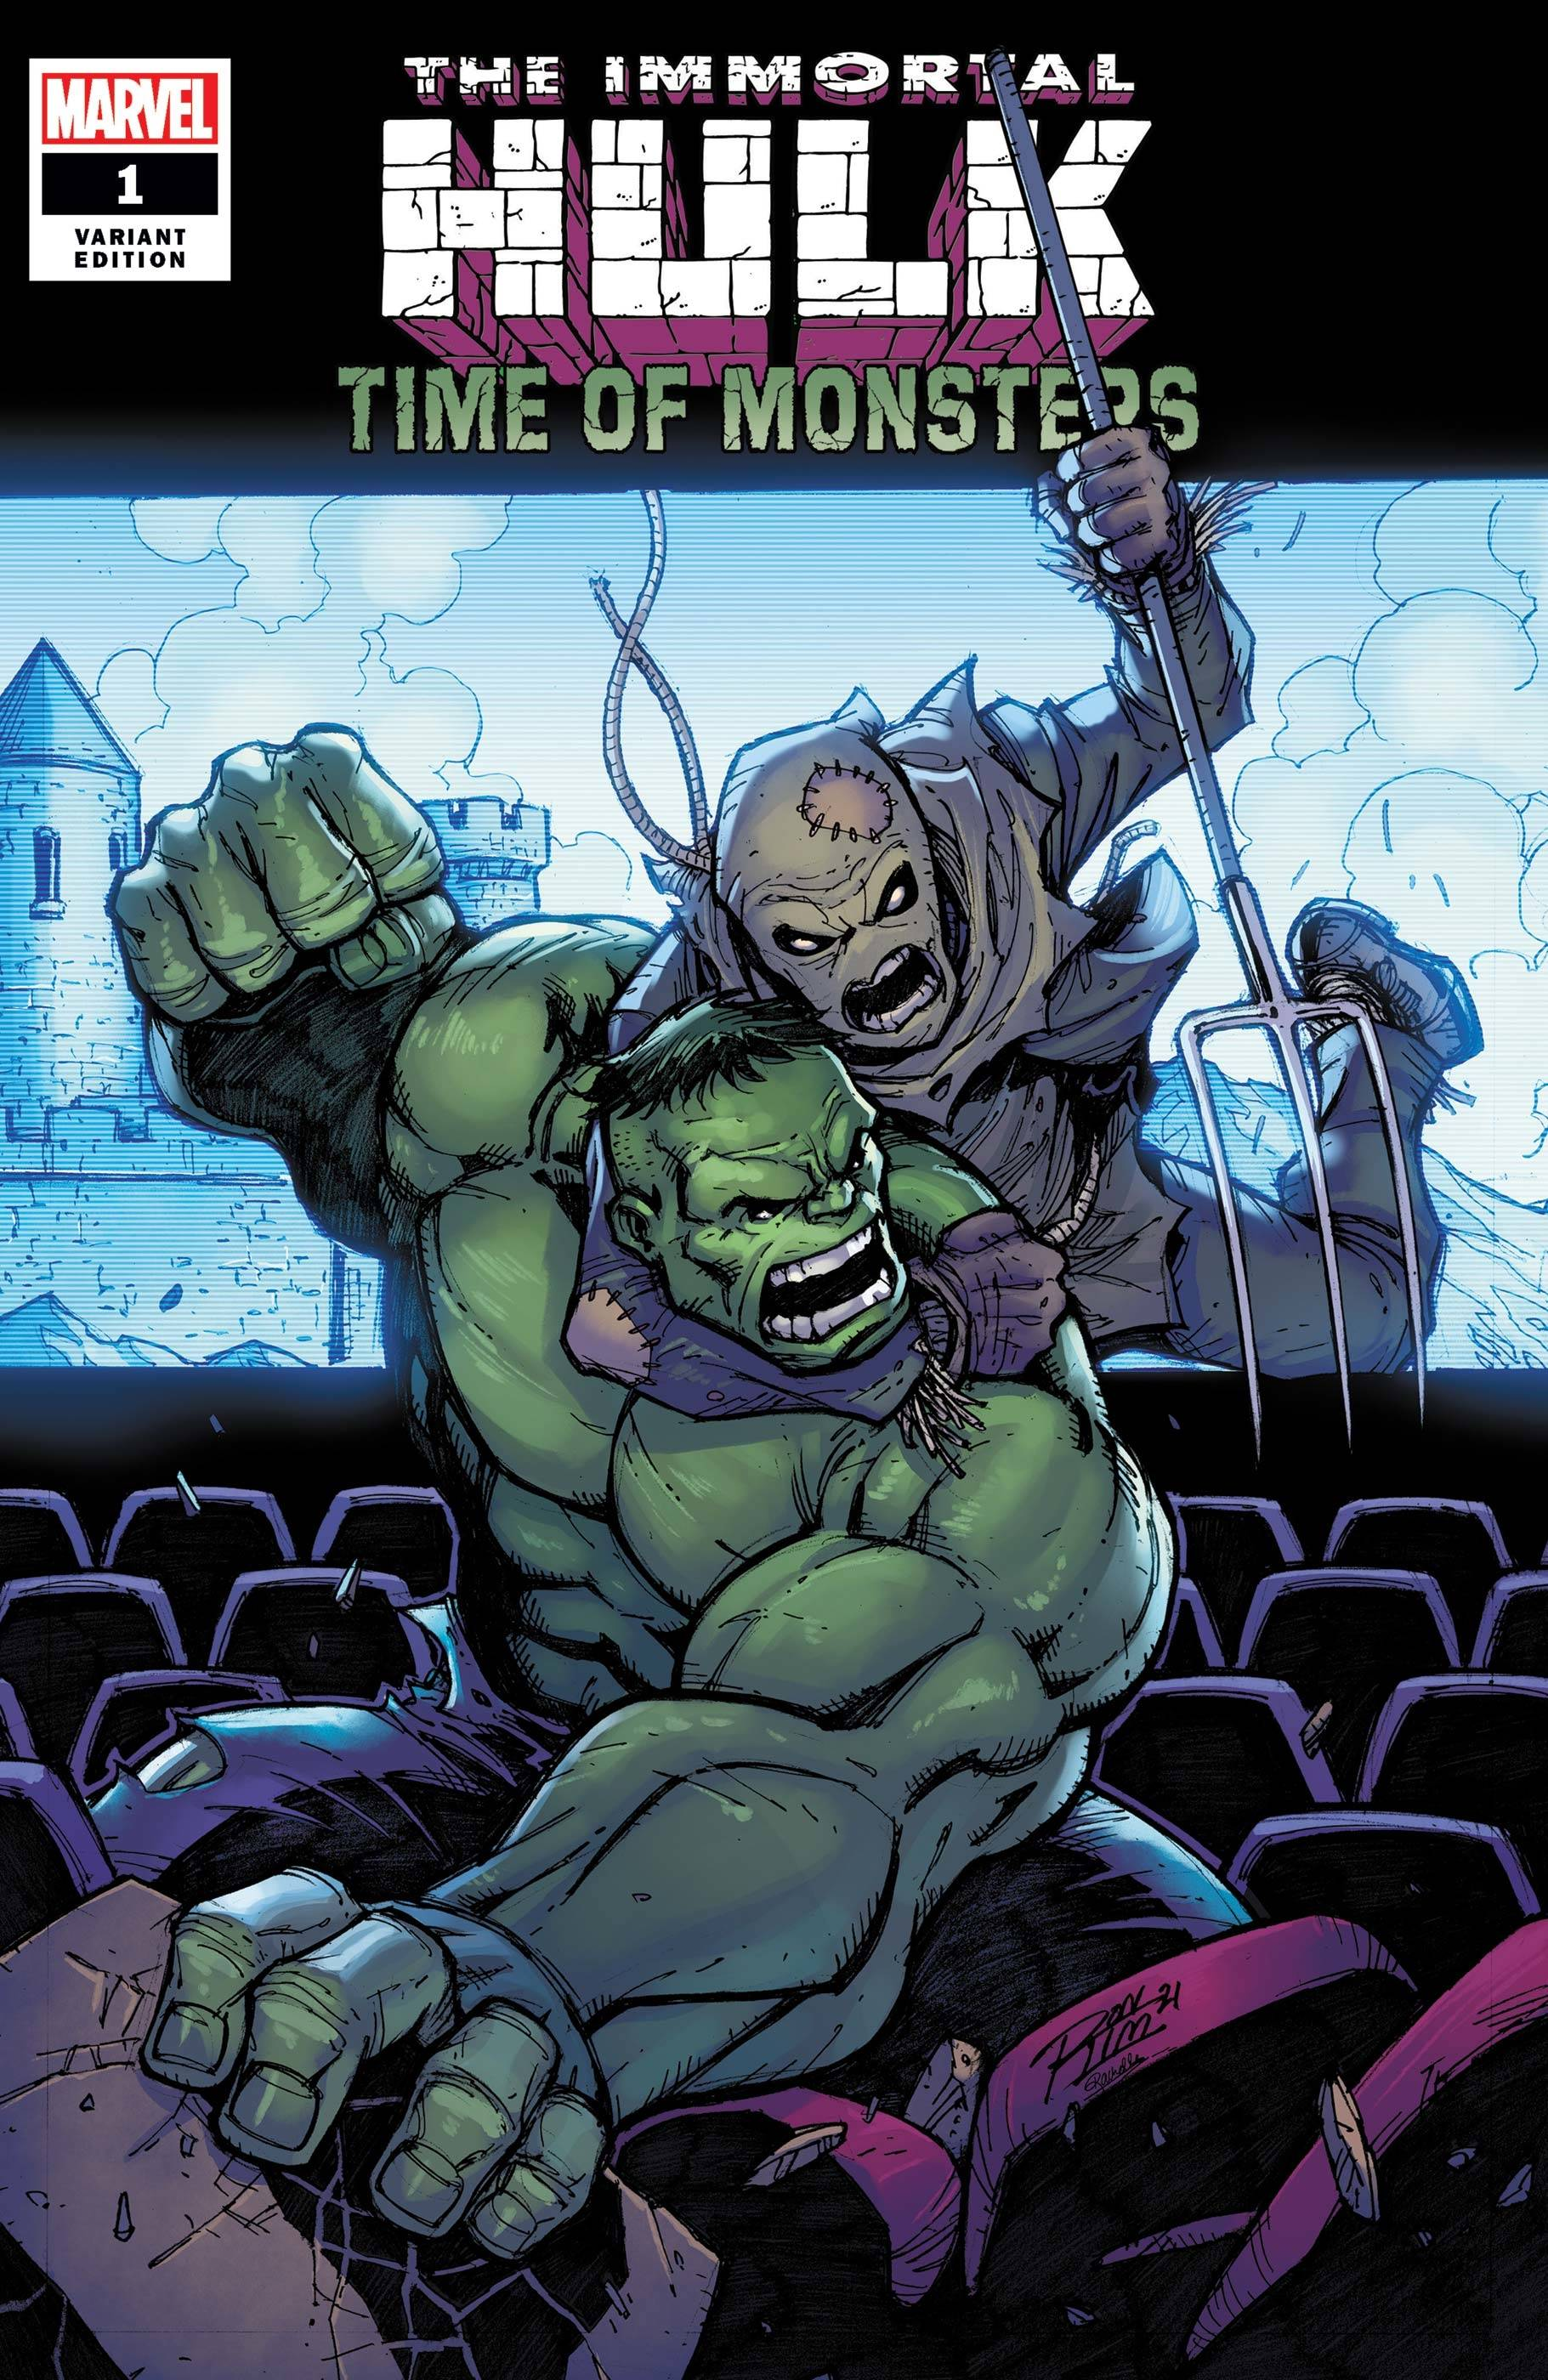 IMMORTAL HULK TIME OF MONSTERS #1 RON LIM VAR